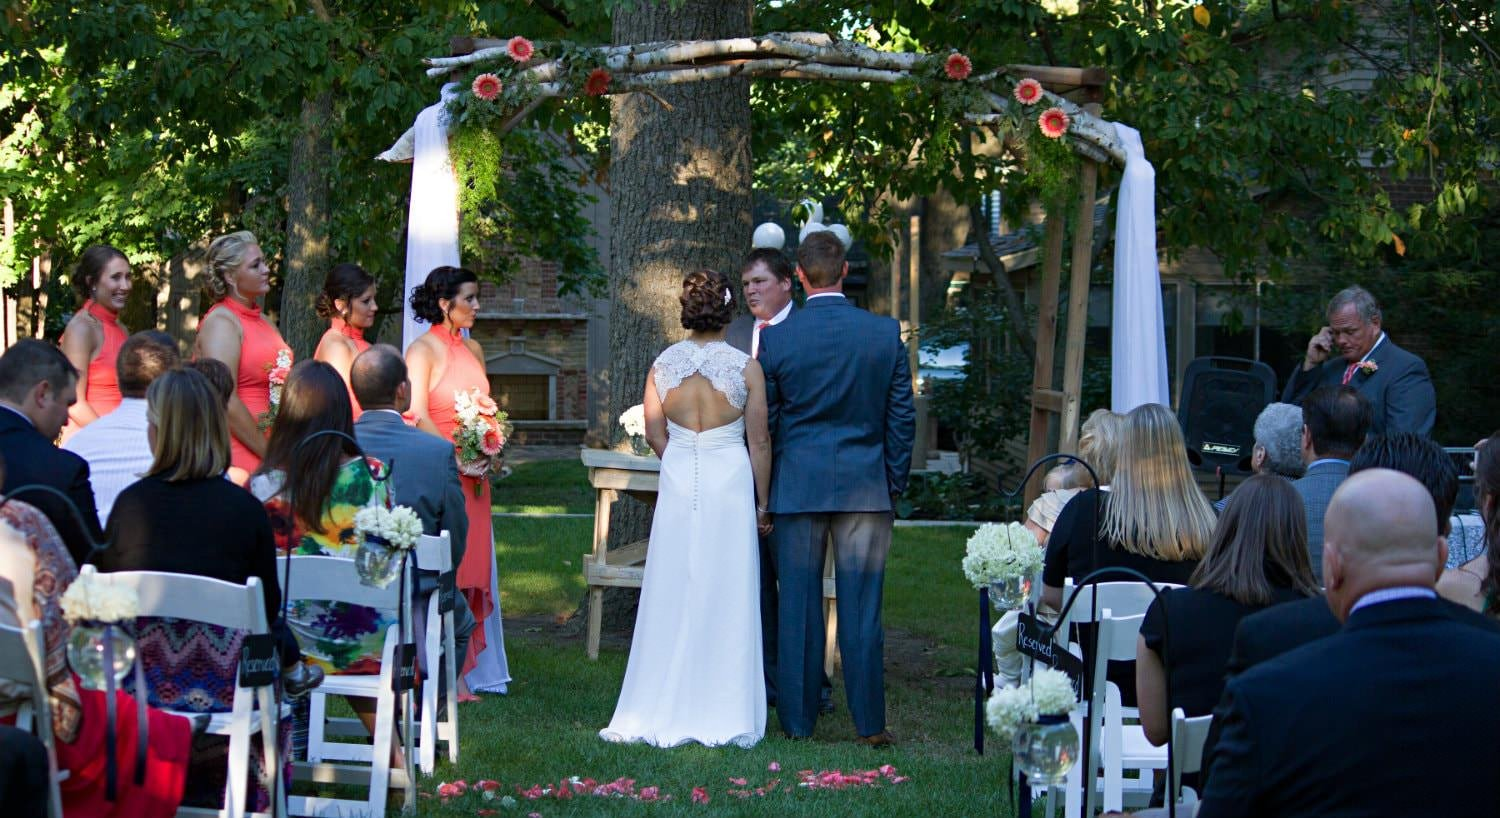 Bride and groom under homemade arch made of branches and white fabric getting married in front of friends and family